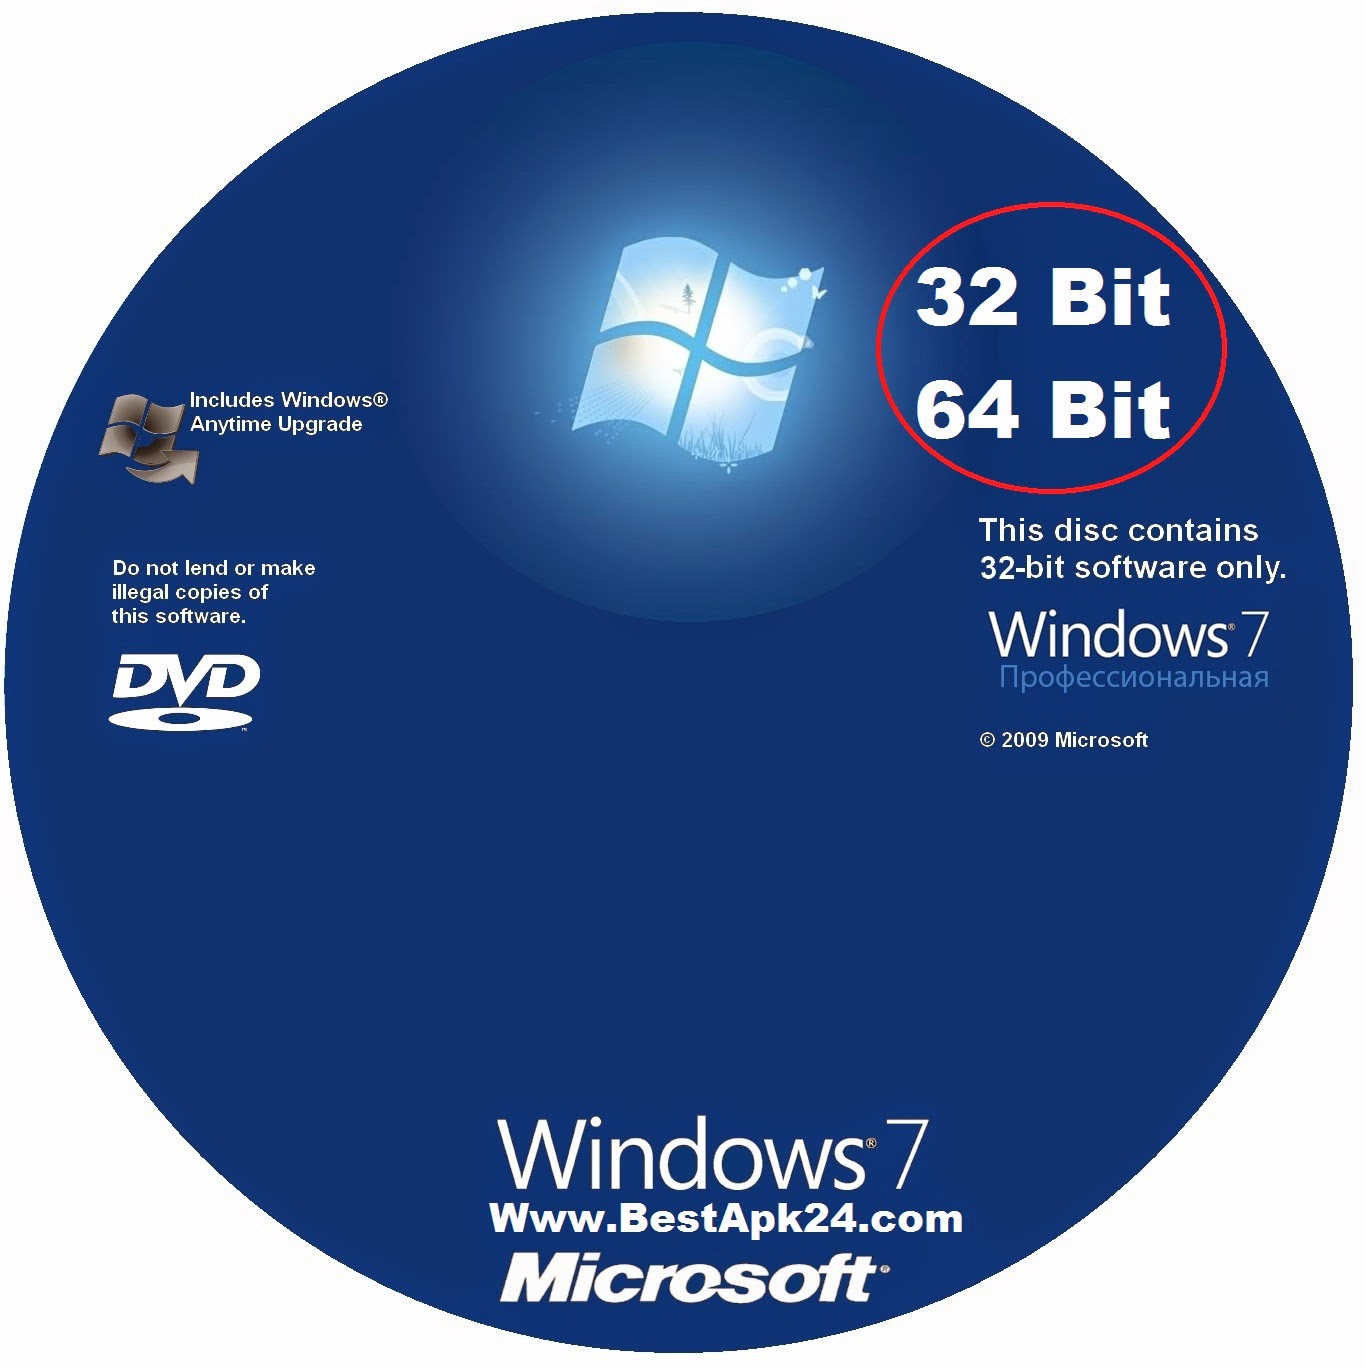 Windows 7 professional 32bit 64bit full license key